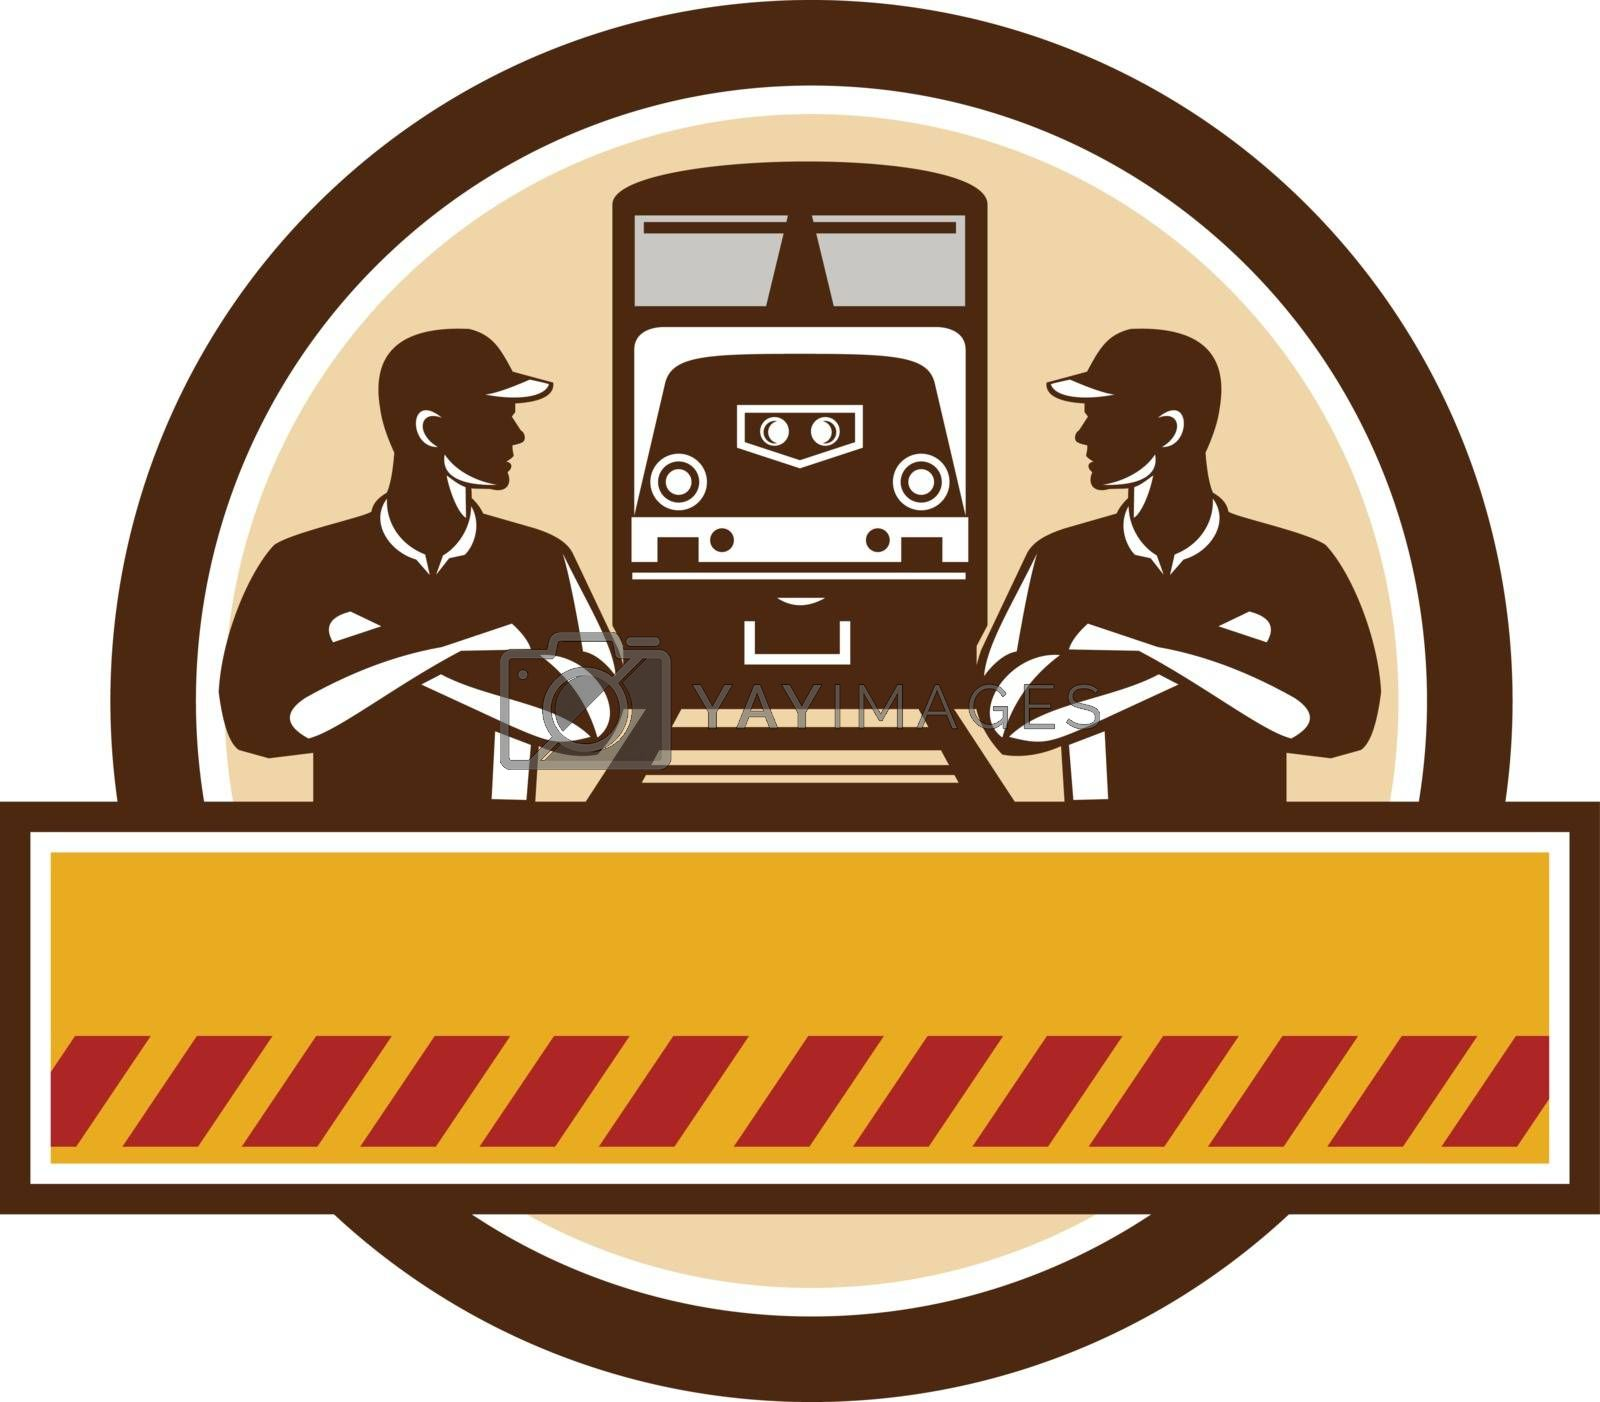 Illustration of train engineers with arms crossed looking at each other with diesel train on rail tracks in the background set inside circle done in retro style.